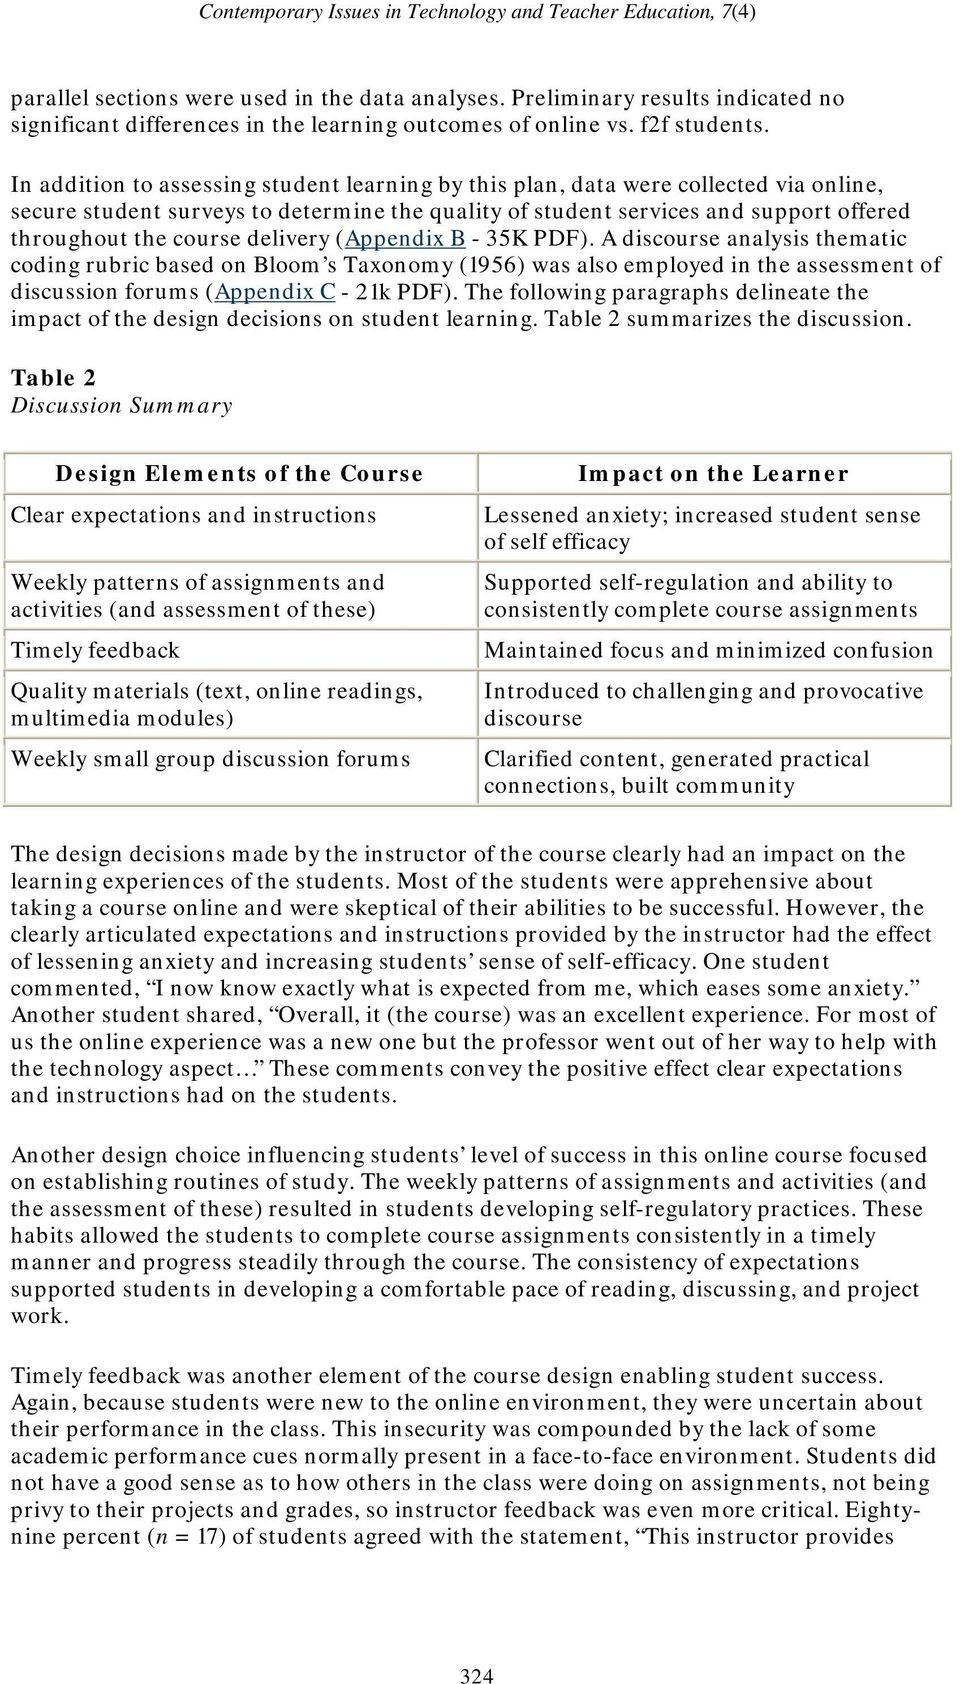 delivery (Appendix B - 35K PDF). A discourse analysis thematic coding rubric based on Bloom s Taxonomy (1956) was also employed in the assessment of discussion forums (Appendix C - 21k PDF).